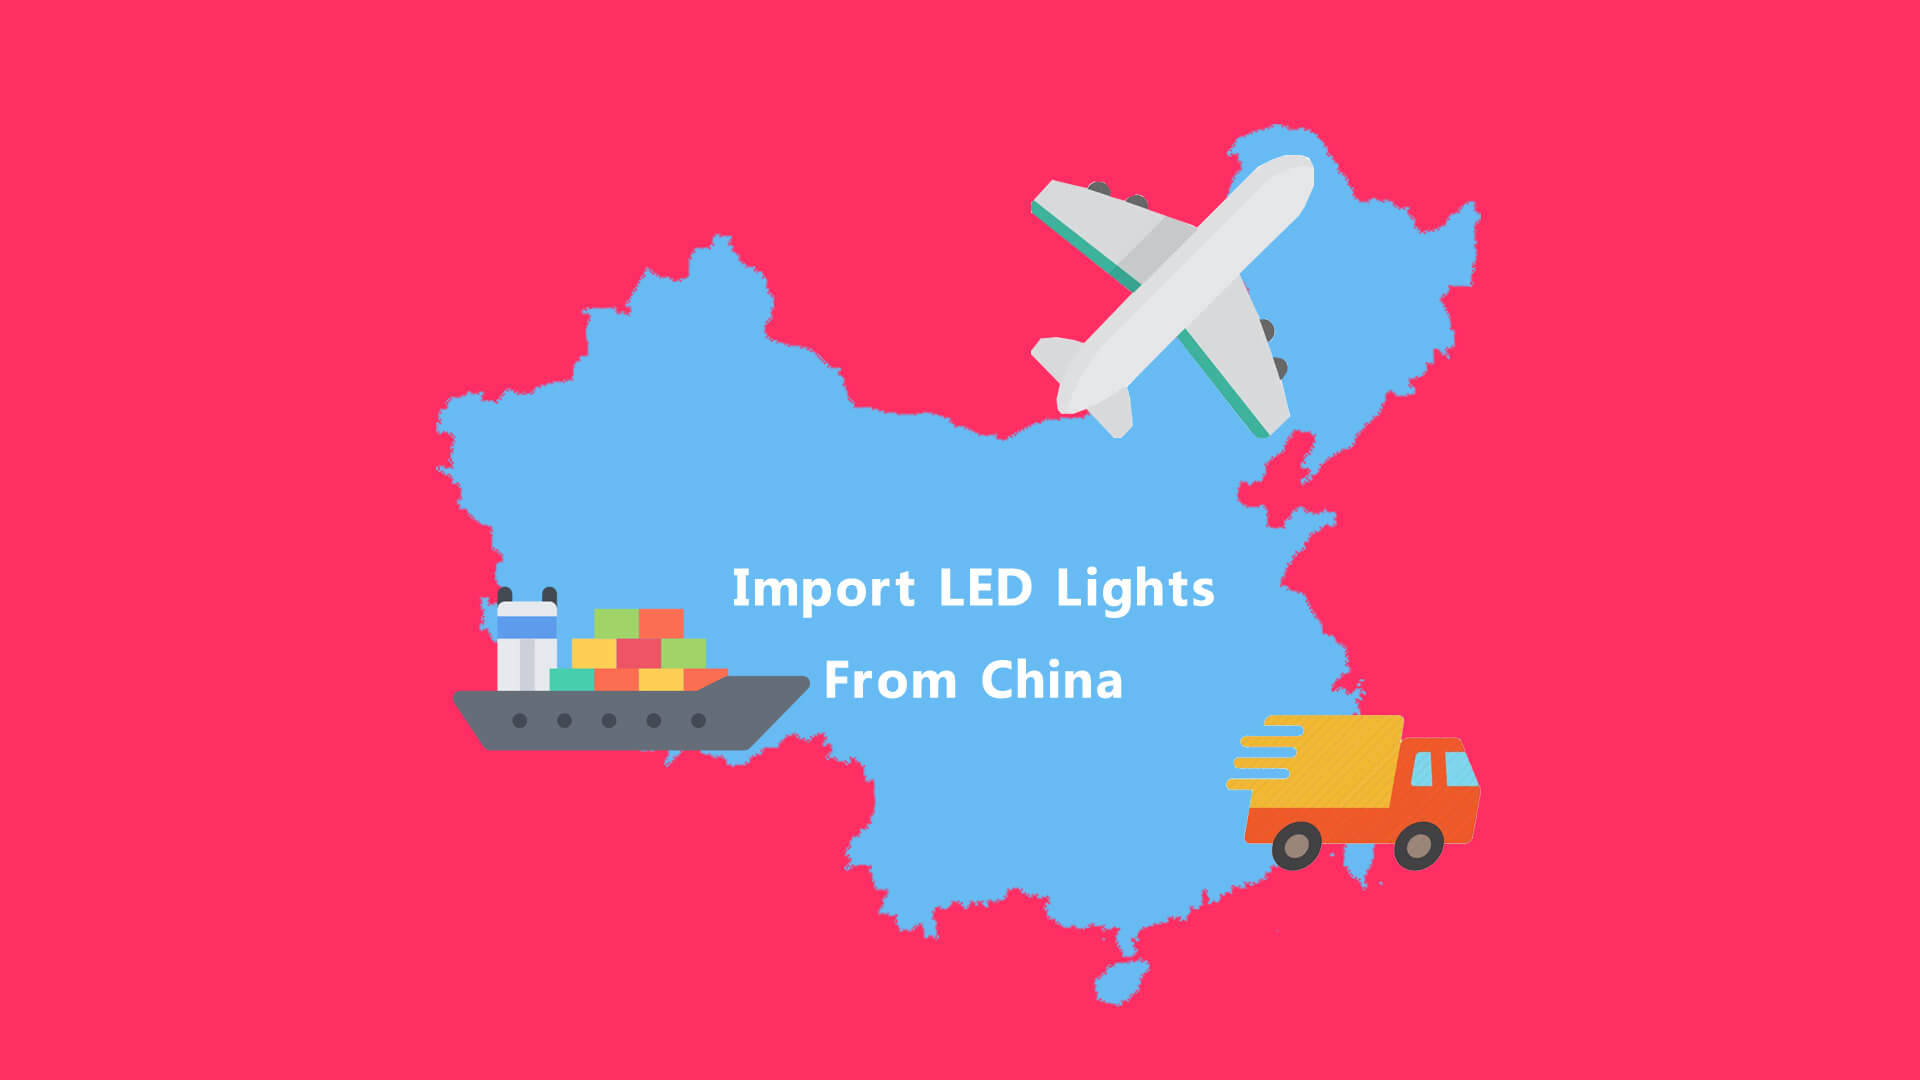 Import LED Lights From China